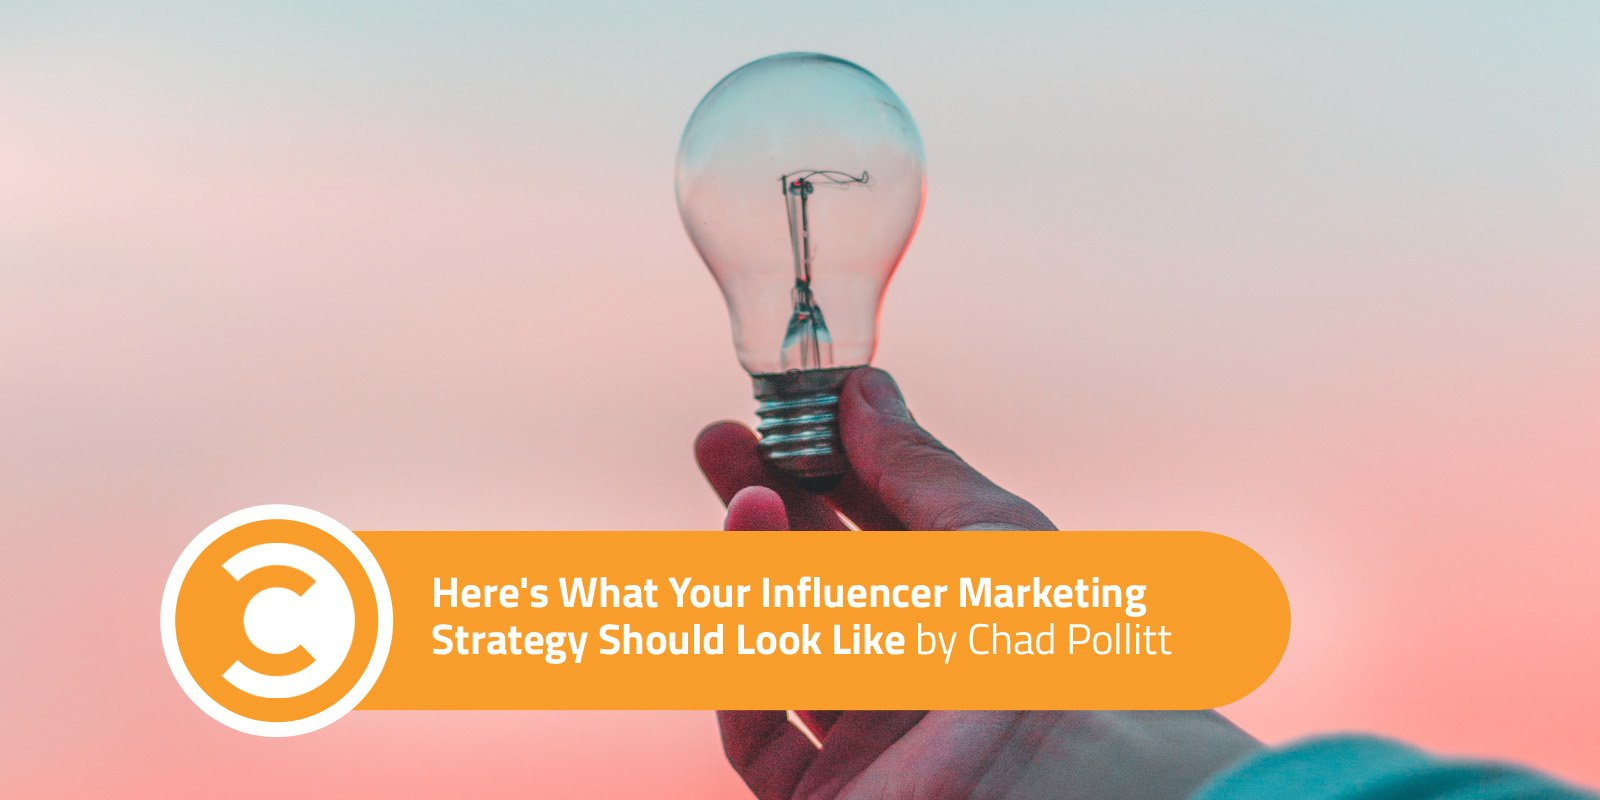 Here's What Your Influencer Marketing Strategy Should Look Like